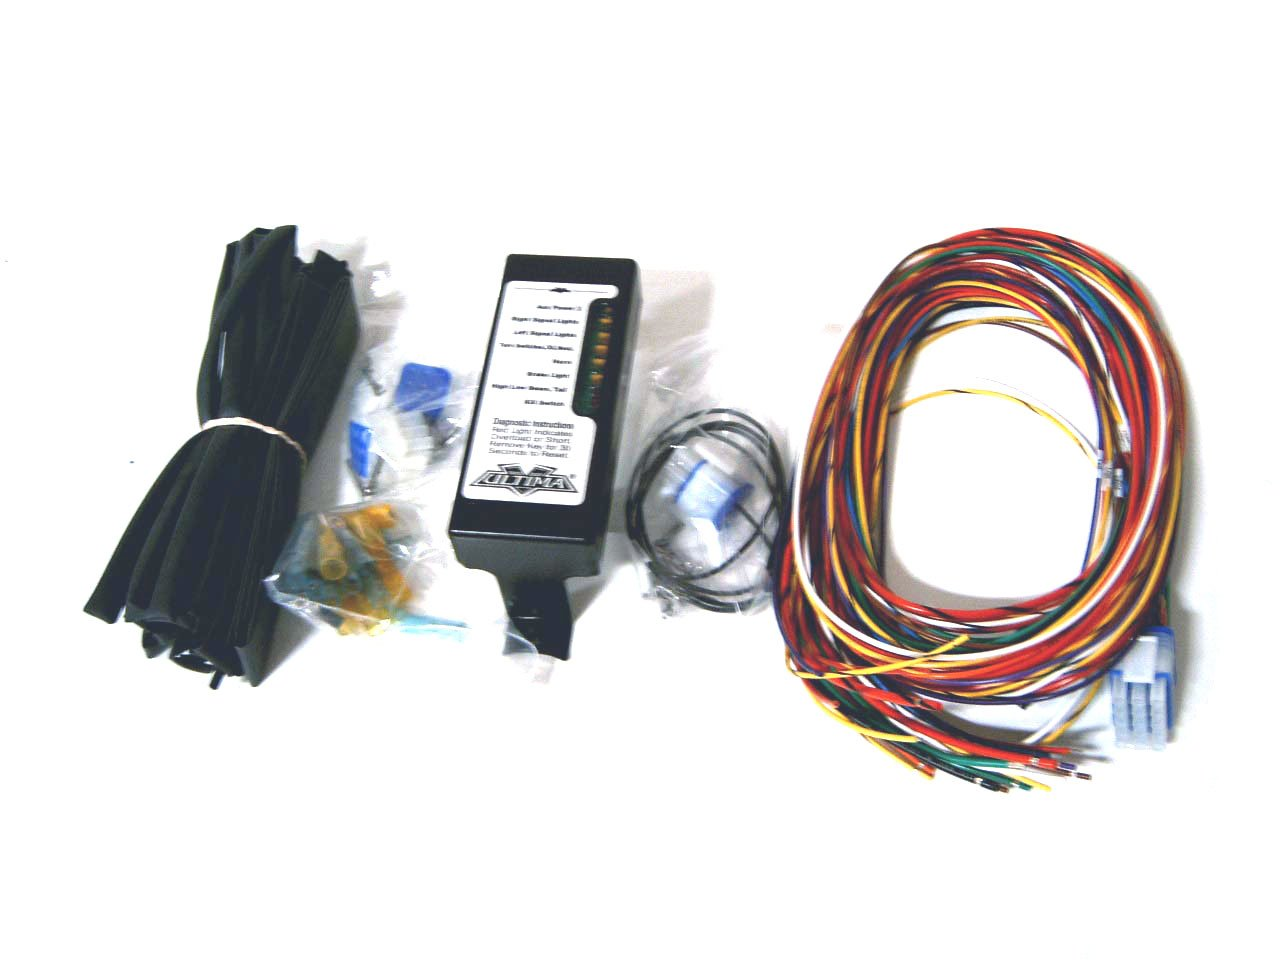 61DV2Bq5%2BHL._SL1280_ amazon com ultima complete wiring harness kit for harley davidson auto wiring harness kits at bakdesigns.co